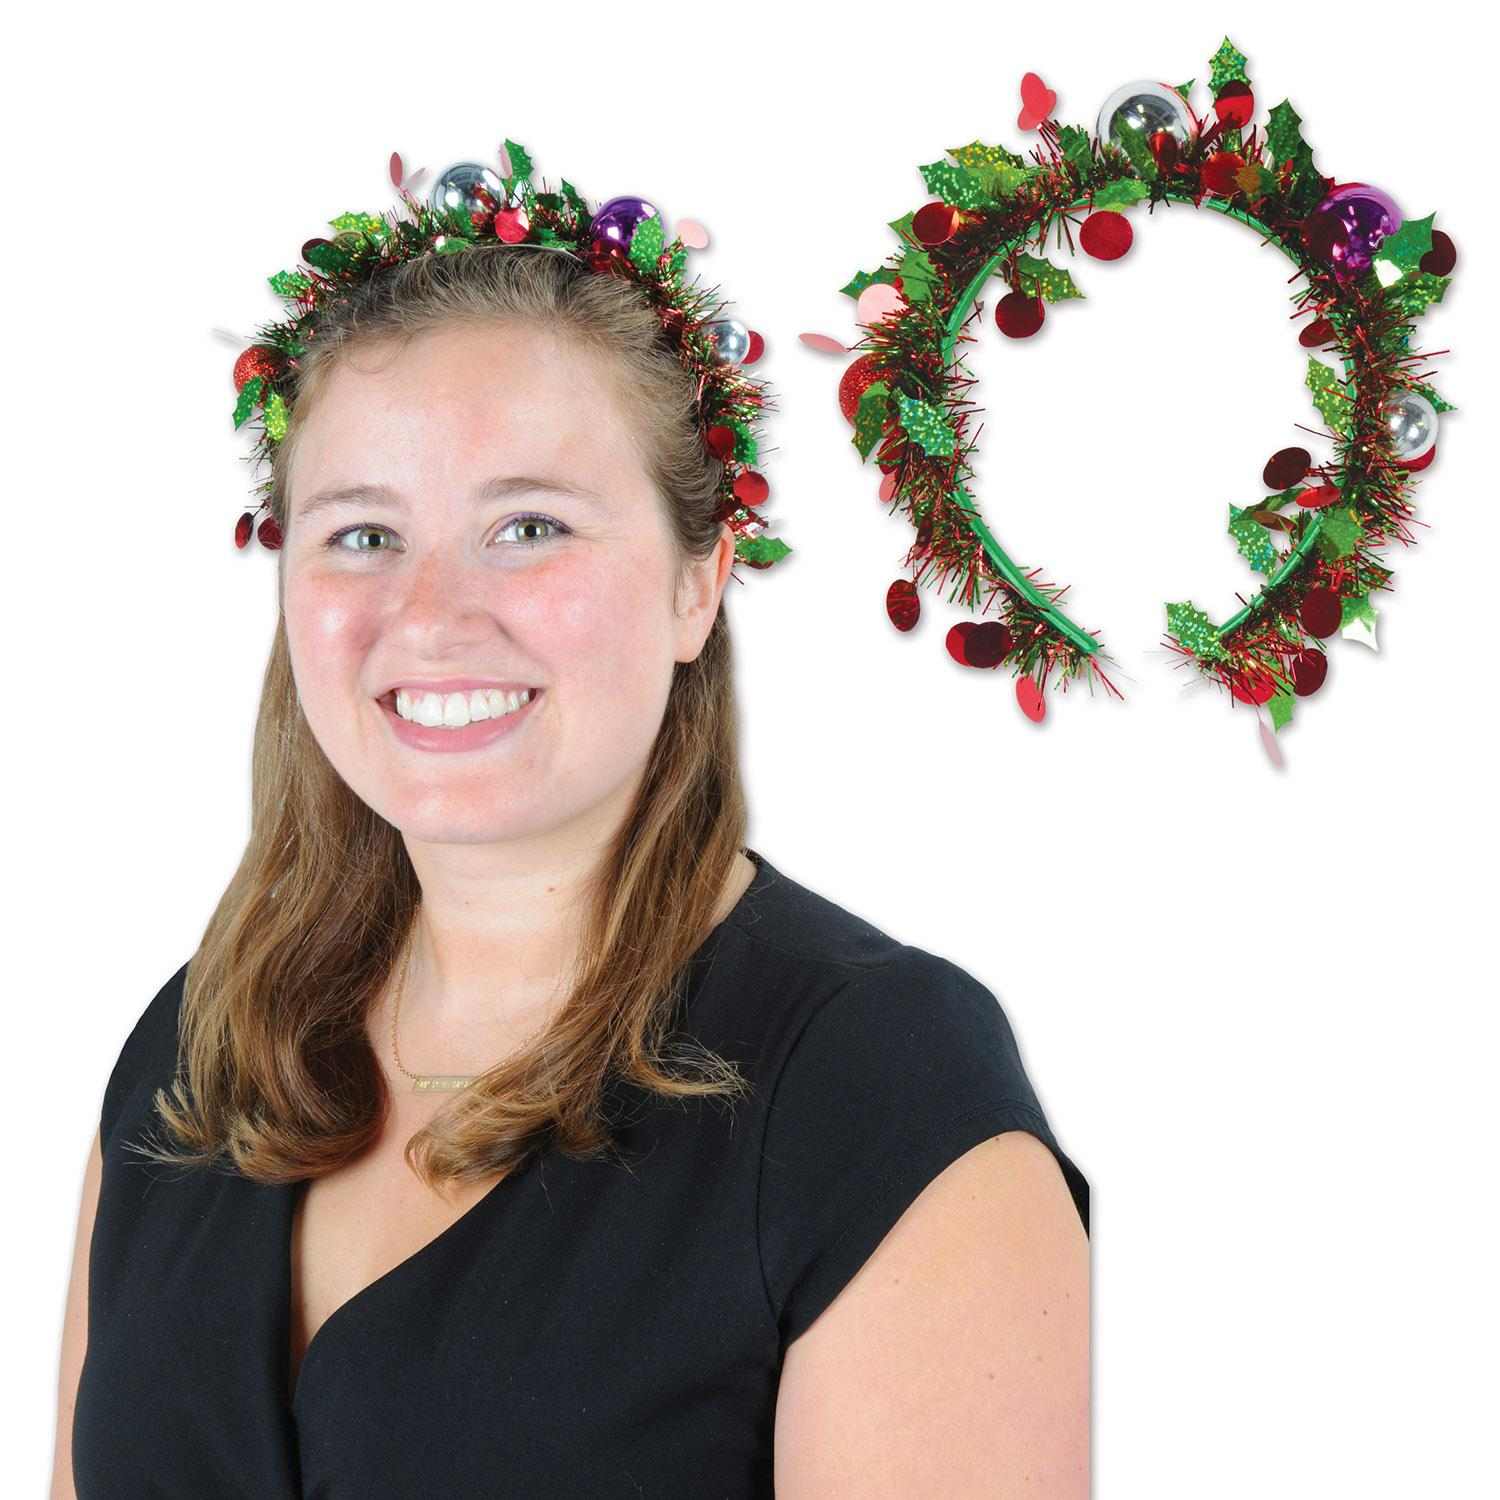 Pack of 12 Tinsel Garland with Ball Ornaments Christmas Headband Costume Accessories